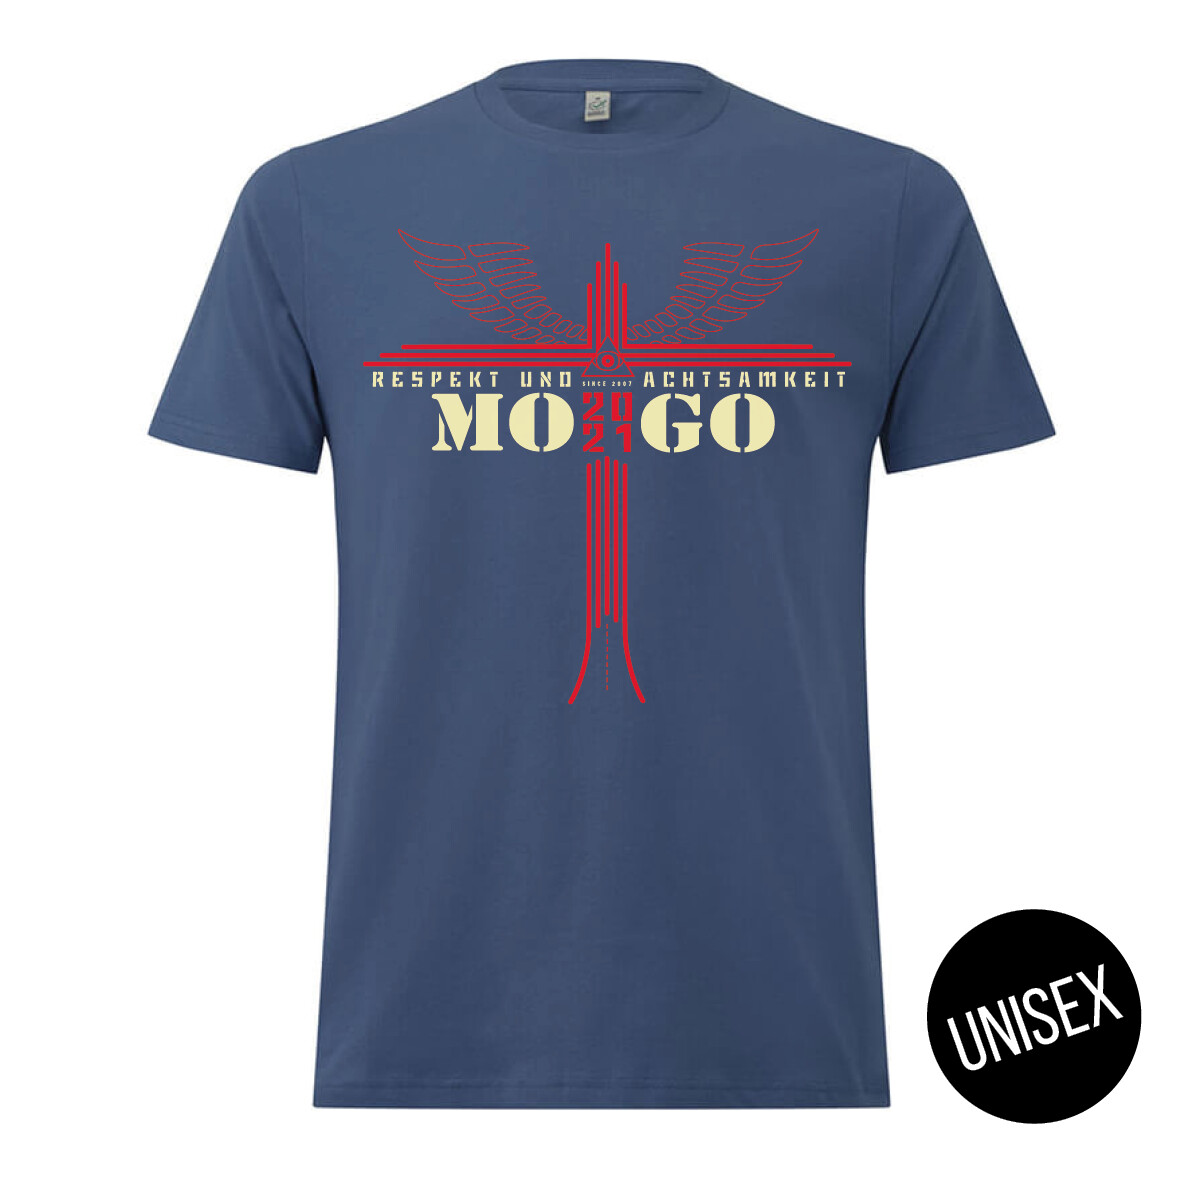 MOGO-Shirt Faded Denim (unisex)